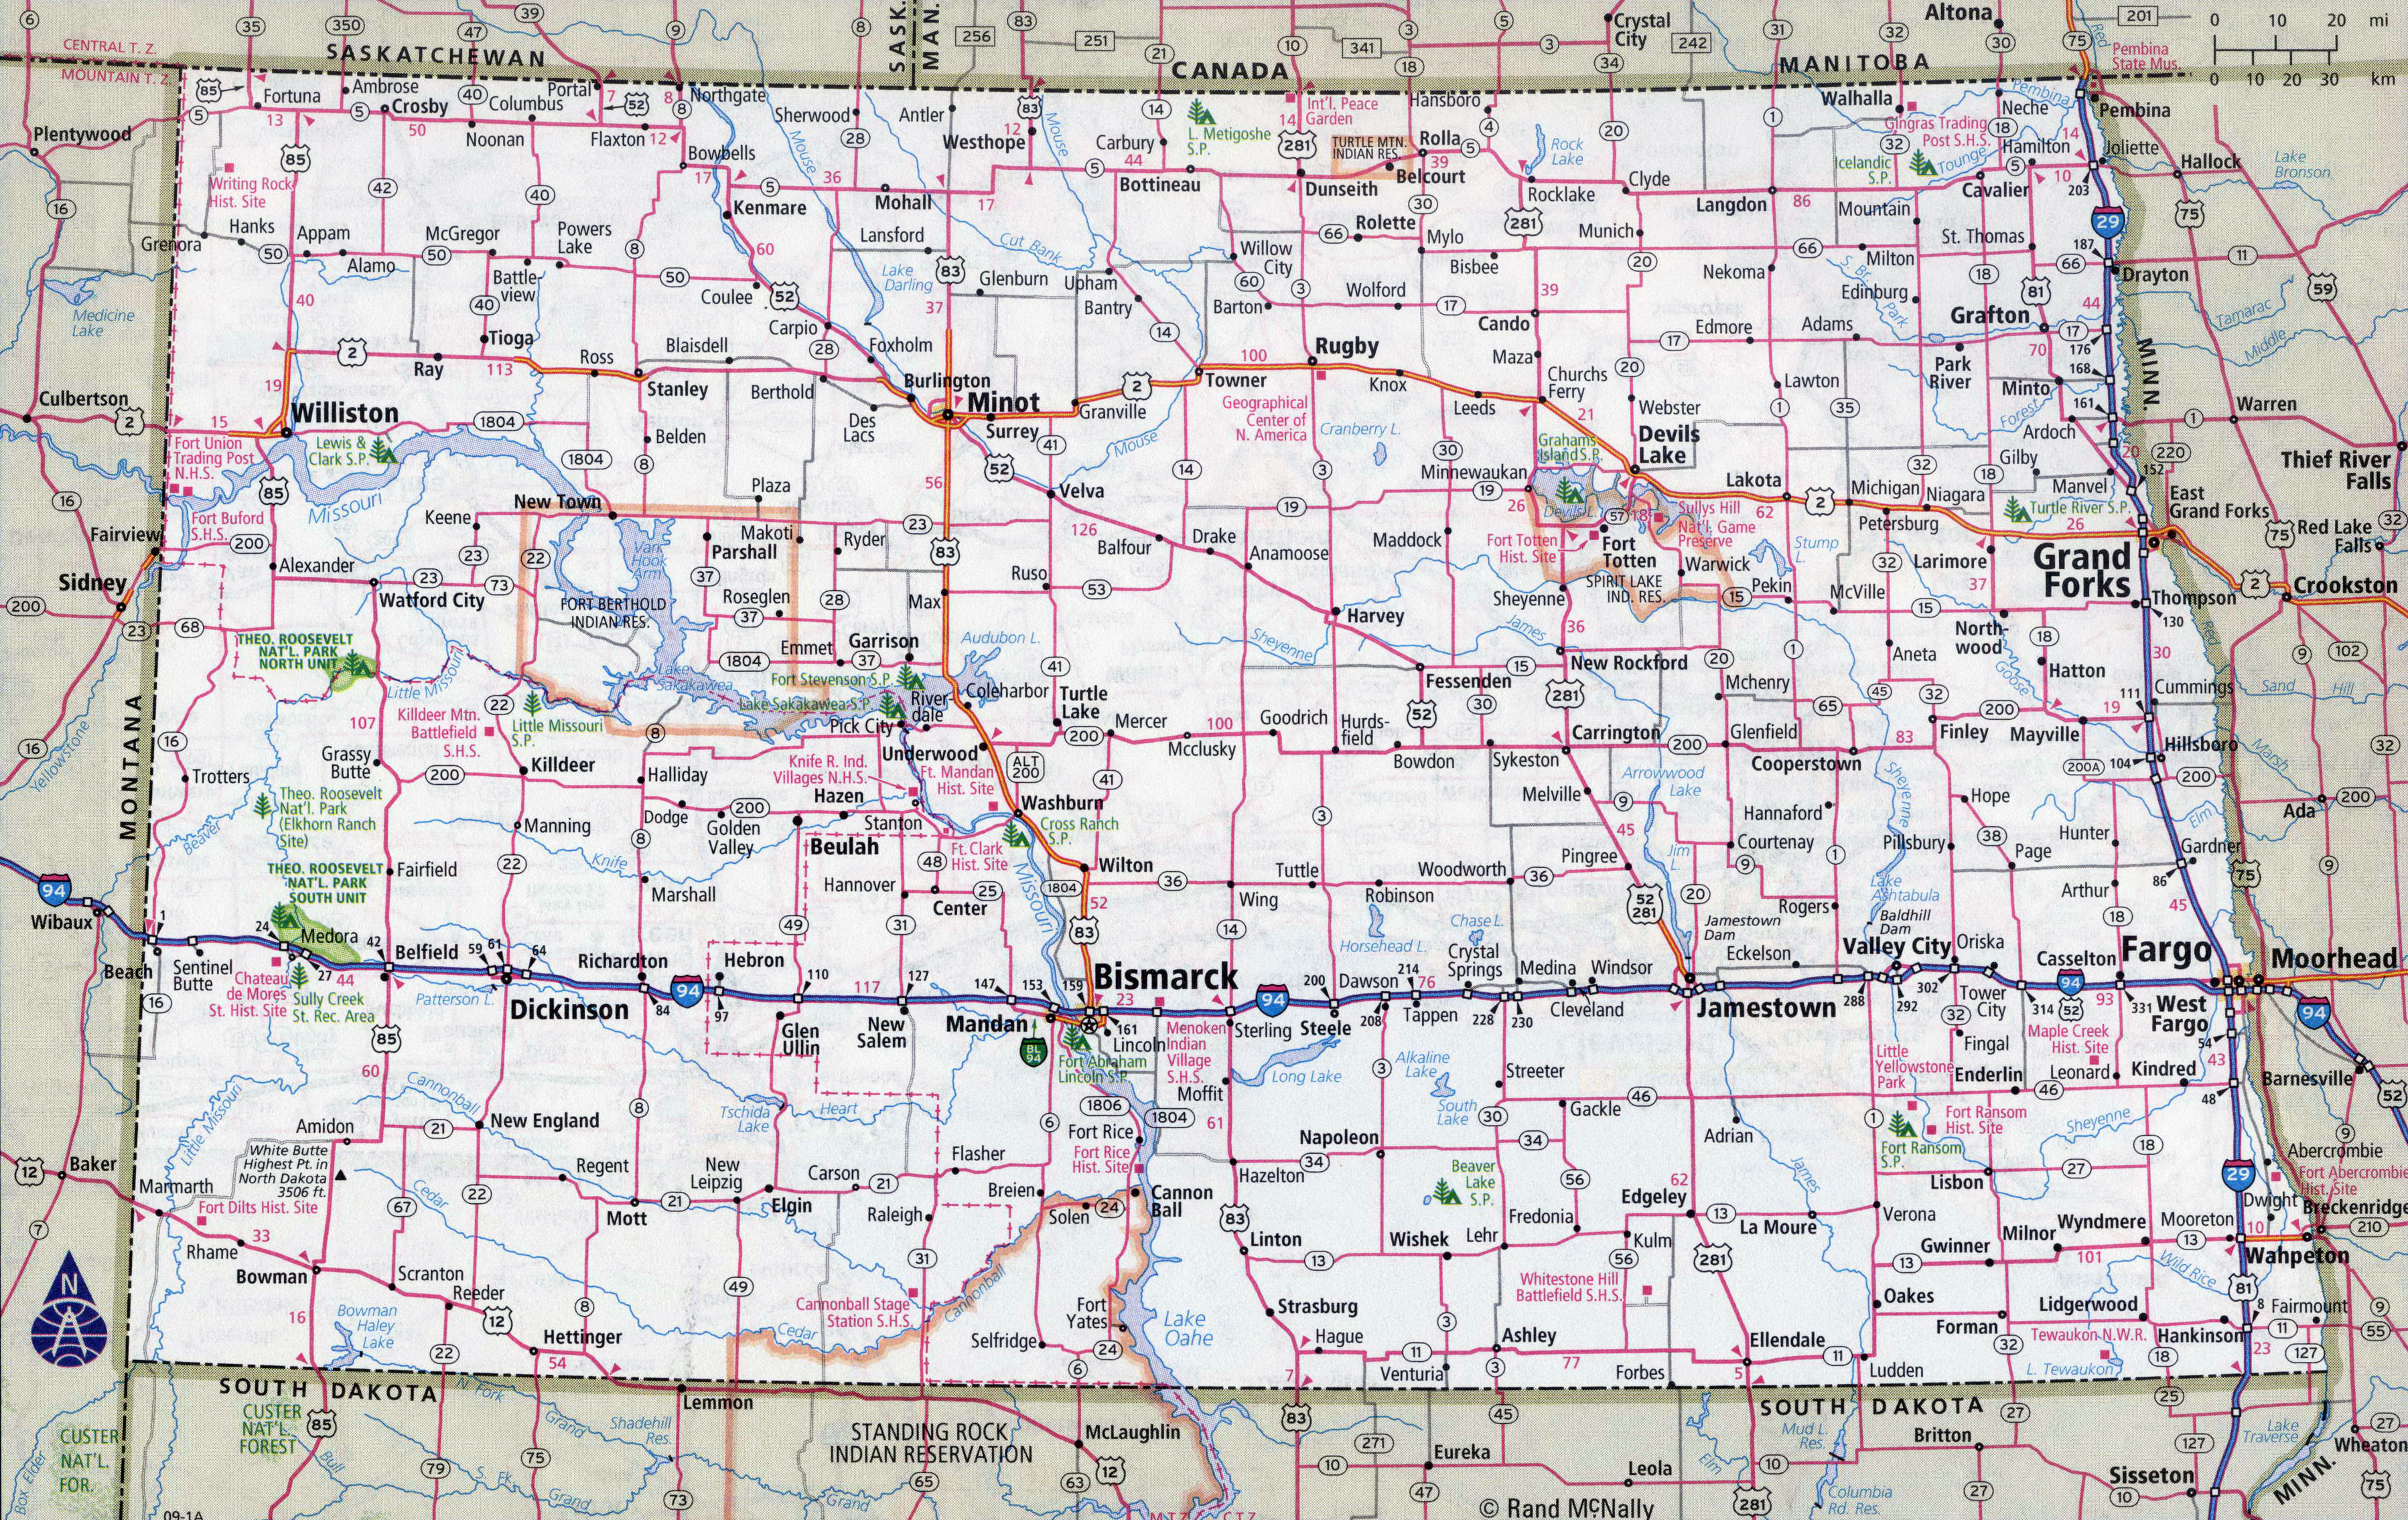 National Parks In Washington State Map.Large Detailed Roads And Highways Map Of North Dakota State With